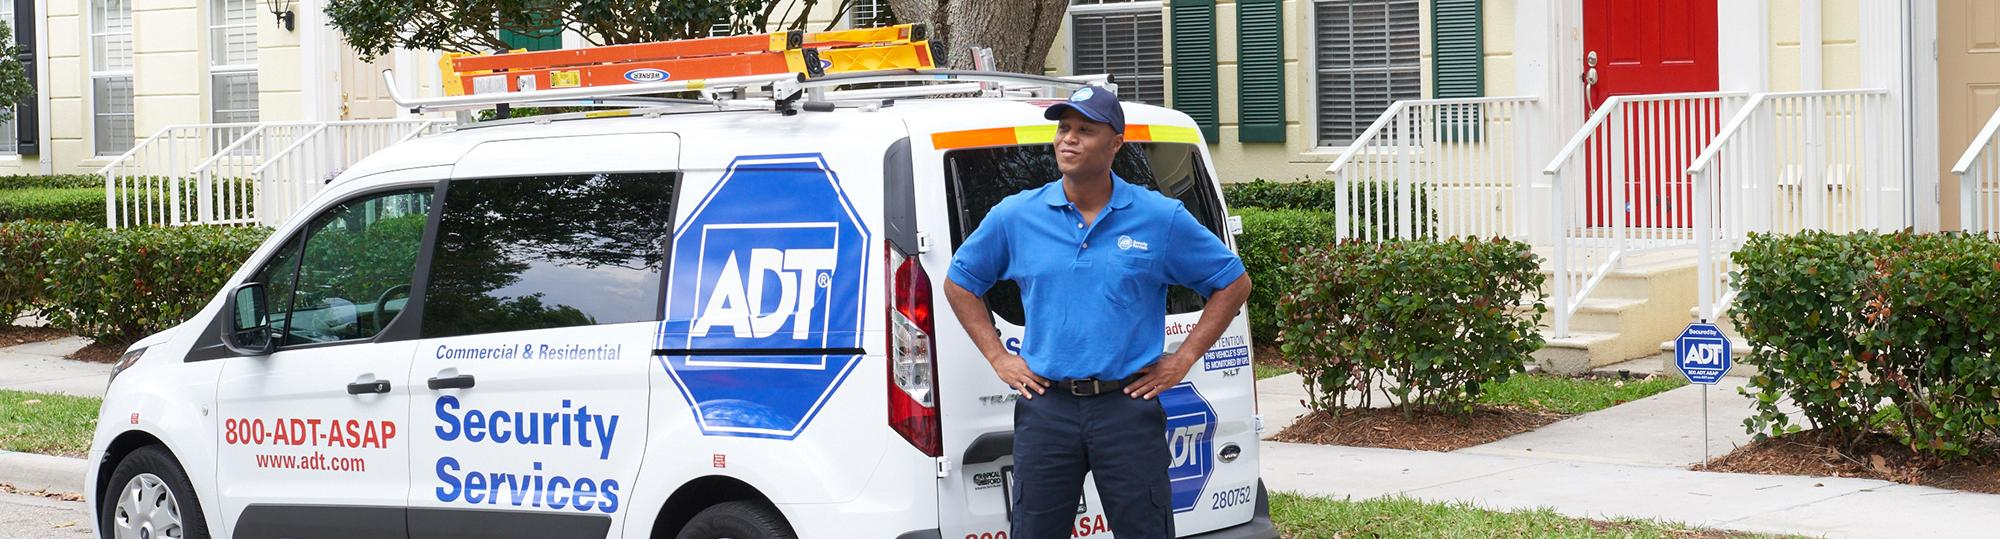 ADT Military Discount with Veterans Advantage